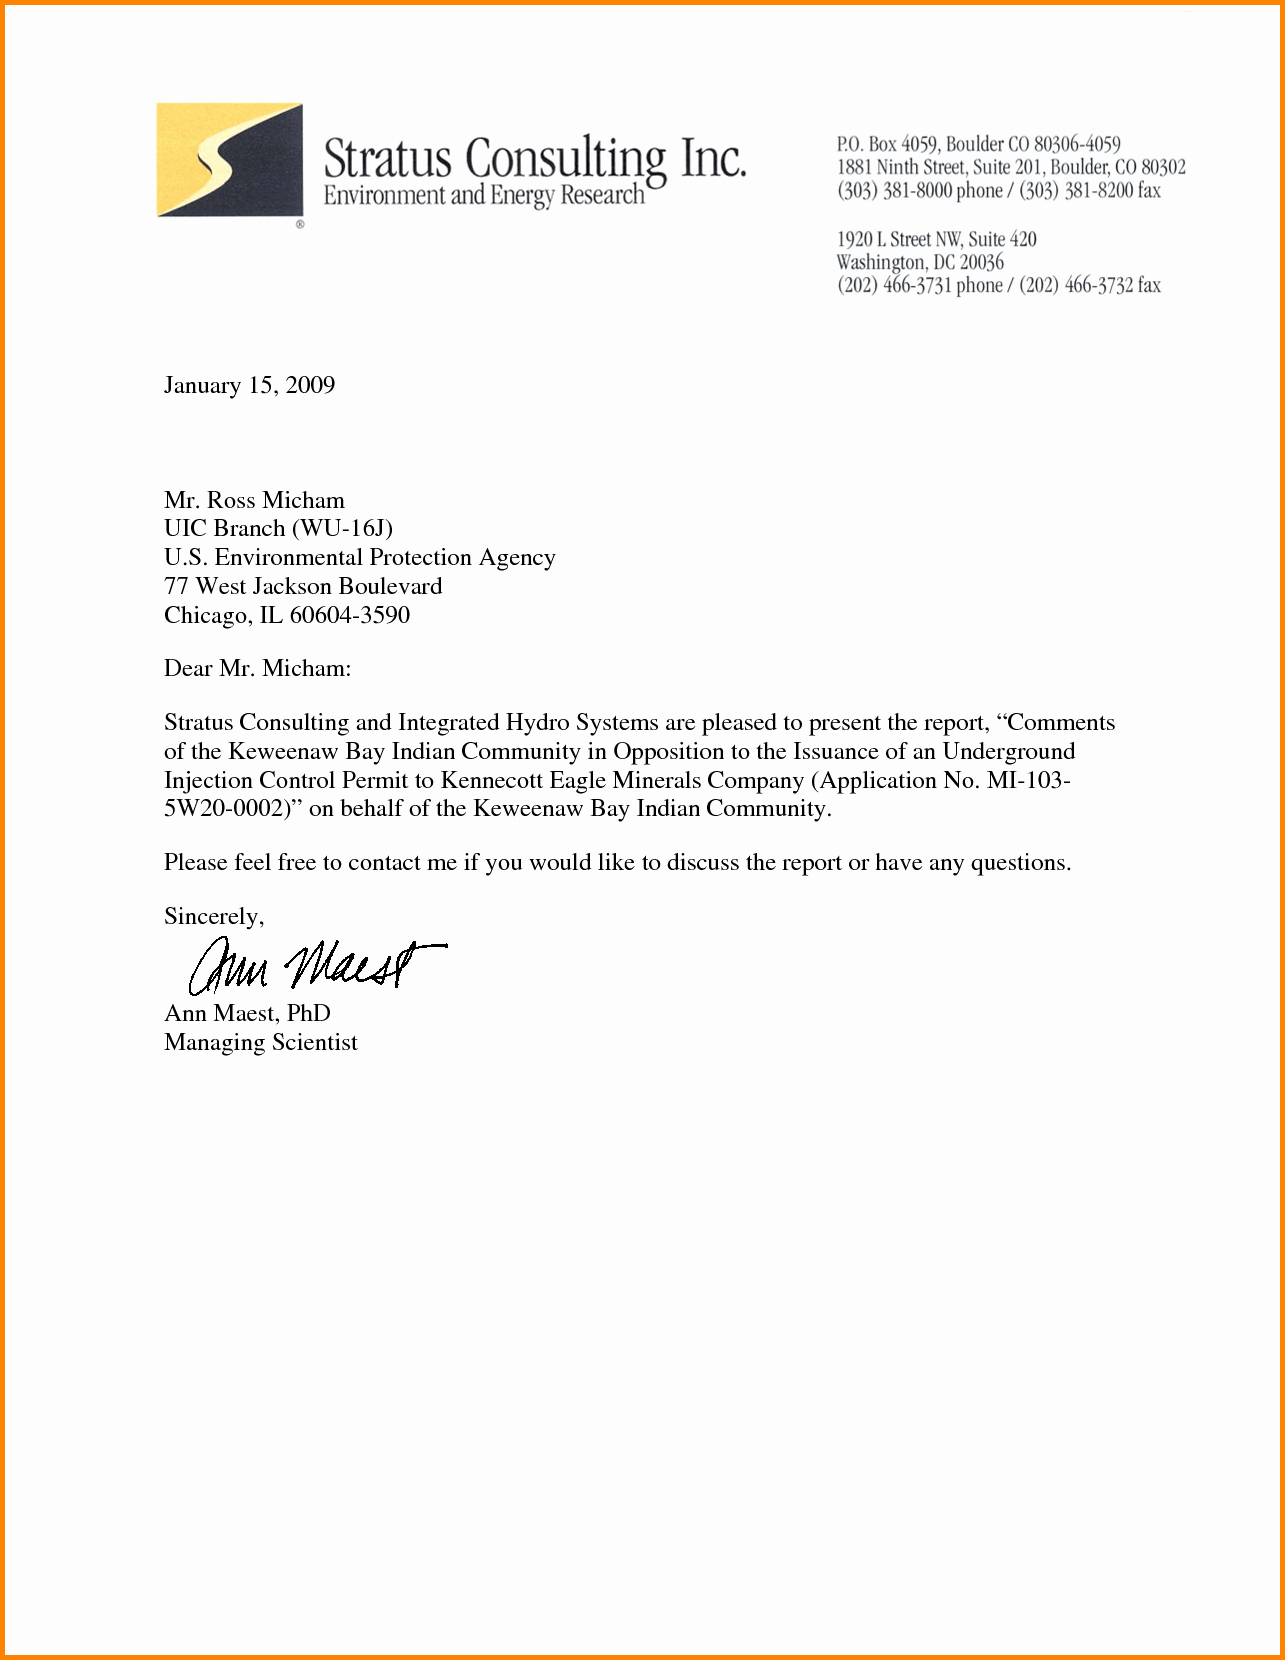 Formal Letter format with Letterhead